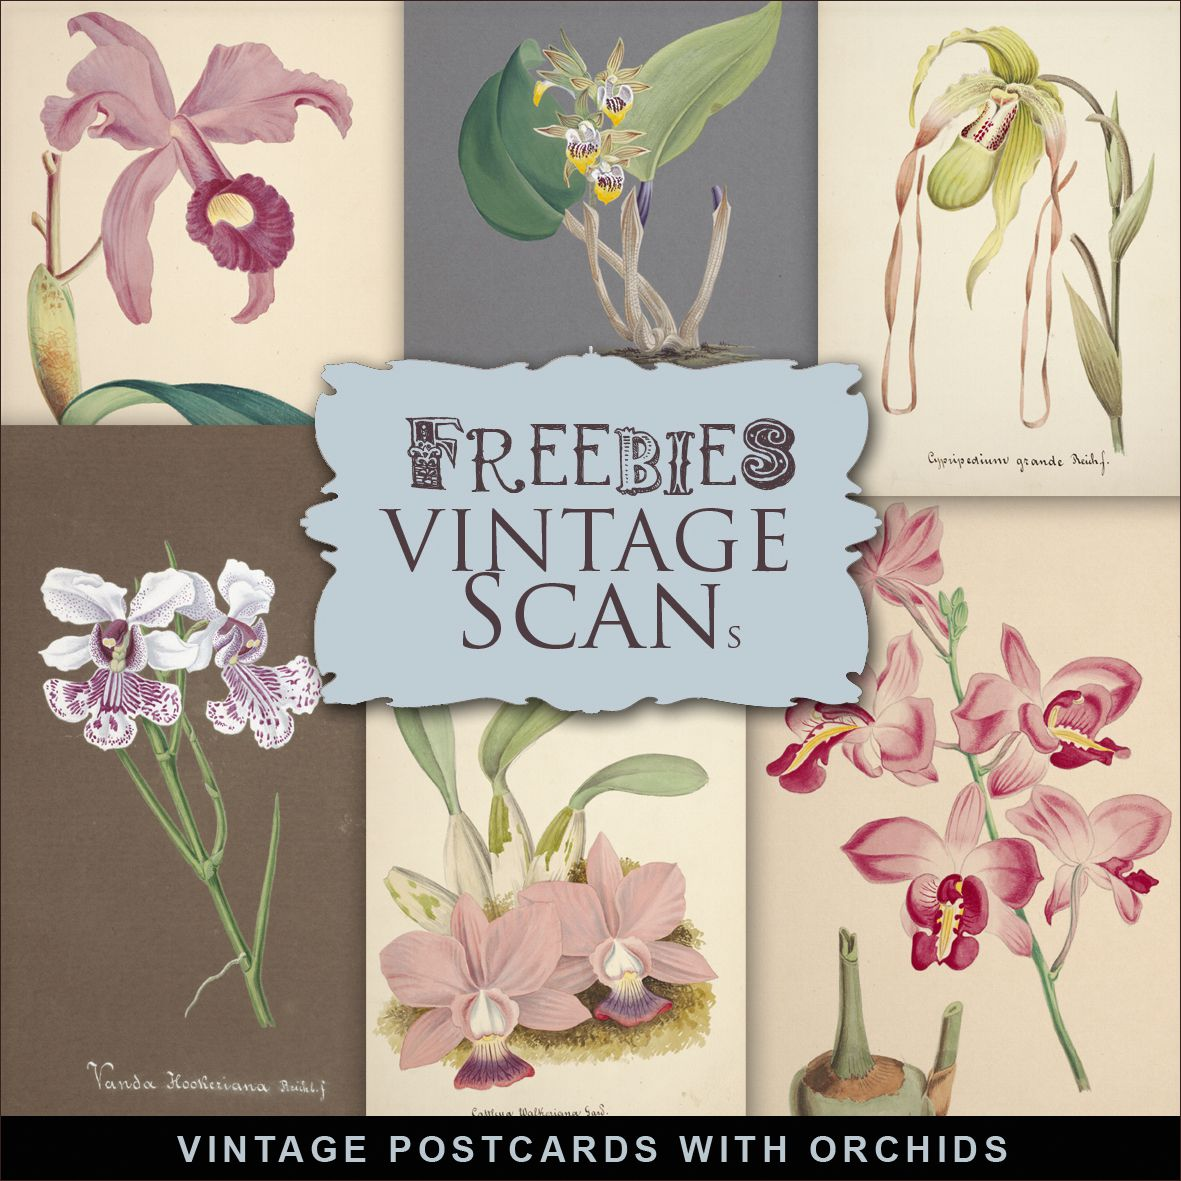 Freebies Kit of Vintage Postcards with Orchids, Freebies, Postcards, Vintage, Flowers, Vintage Orchids, Vintage orchidées, Orchidées, fleurs vintage, Kit de scrapbooking vintage, Scrapbook kit vintage,